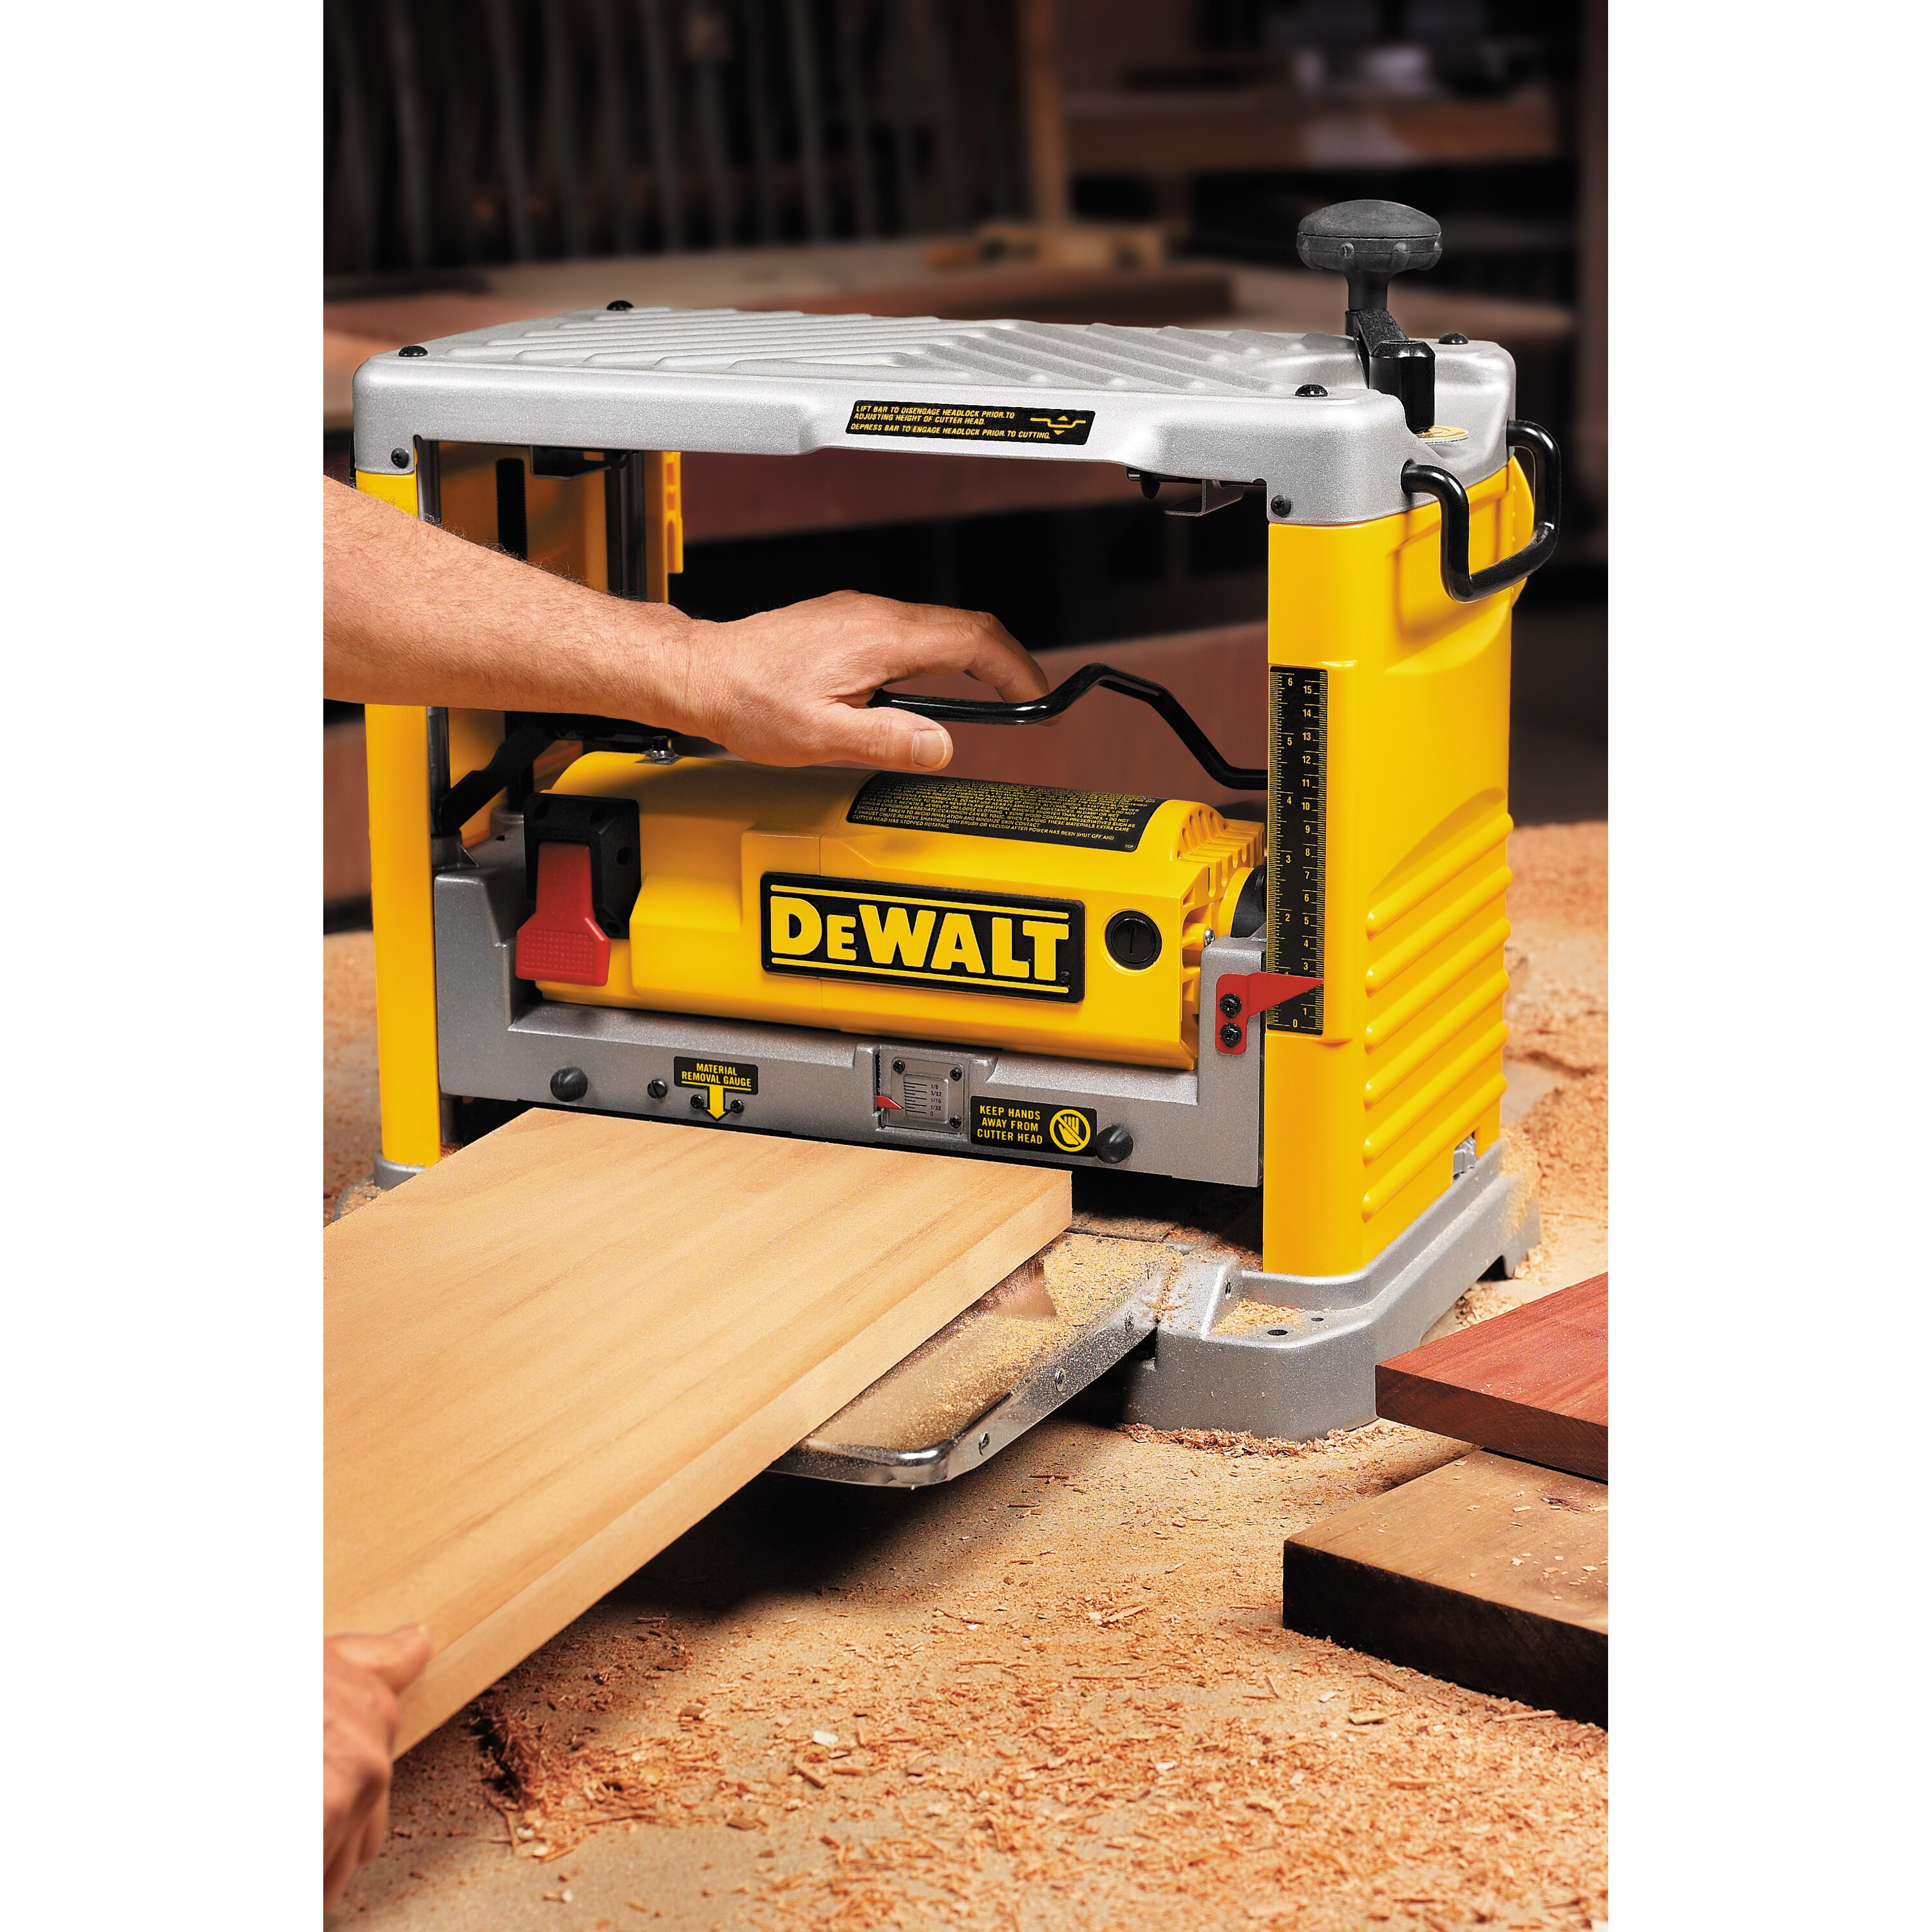 12 1 2 Quot Thickness Planer With Three Knife Cutter Head